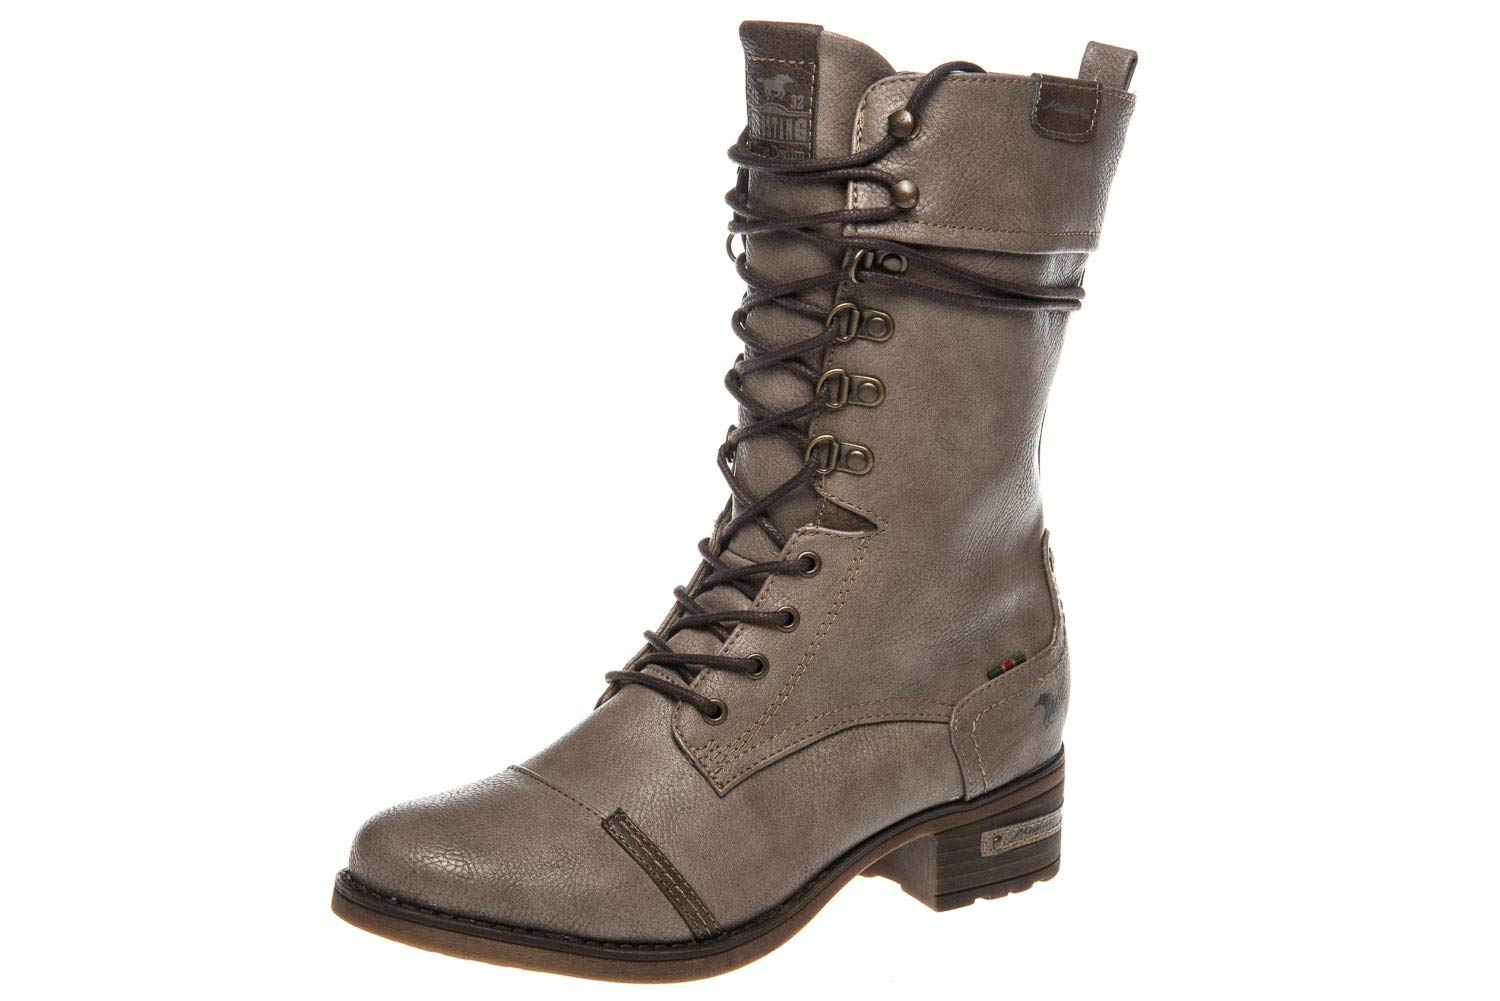 Mustang Botines Schnür-Stiefelette, Botines Femme 19983 B078SX2SHY Taupe 4ecfd5d - reprogrammed.space